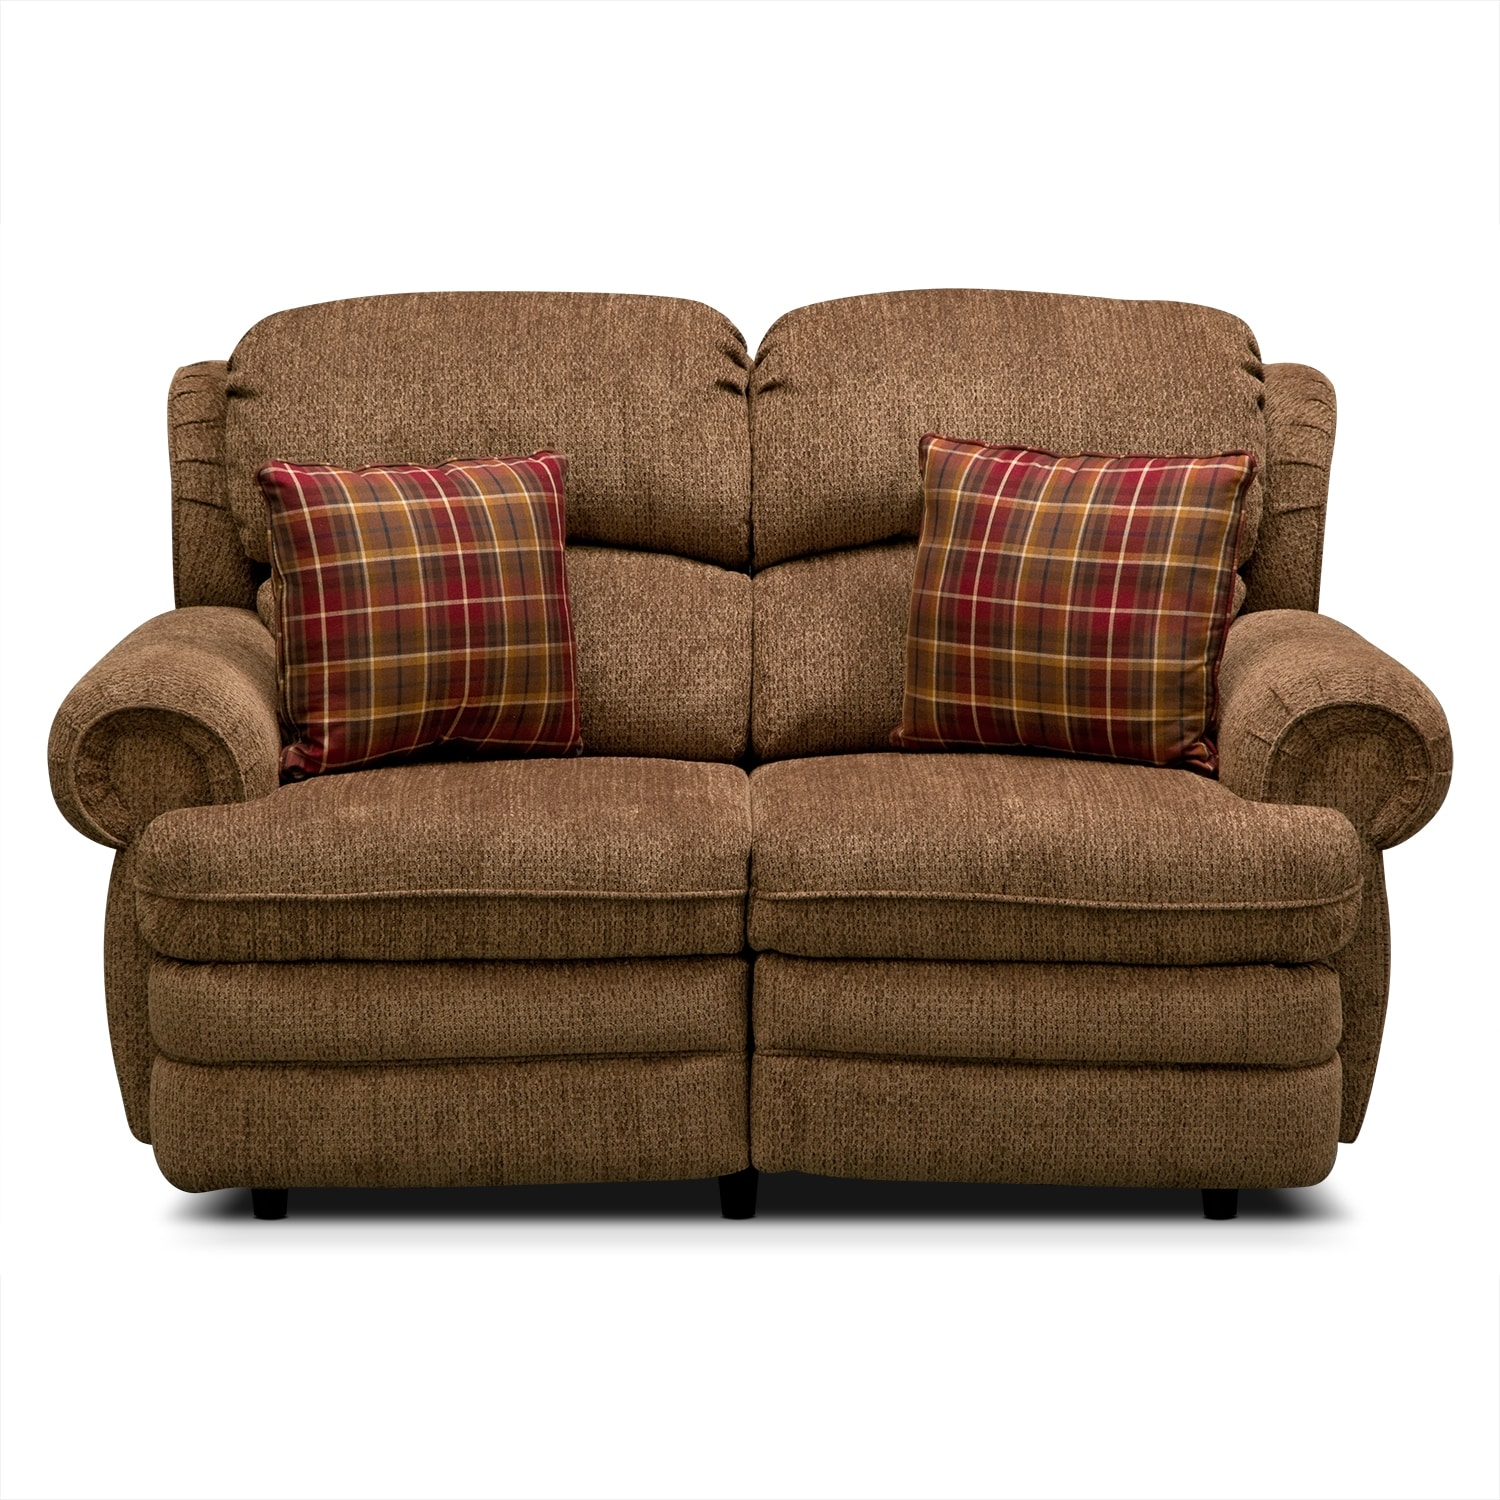 Laconia reclining loveseat Reclining loveseat sale